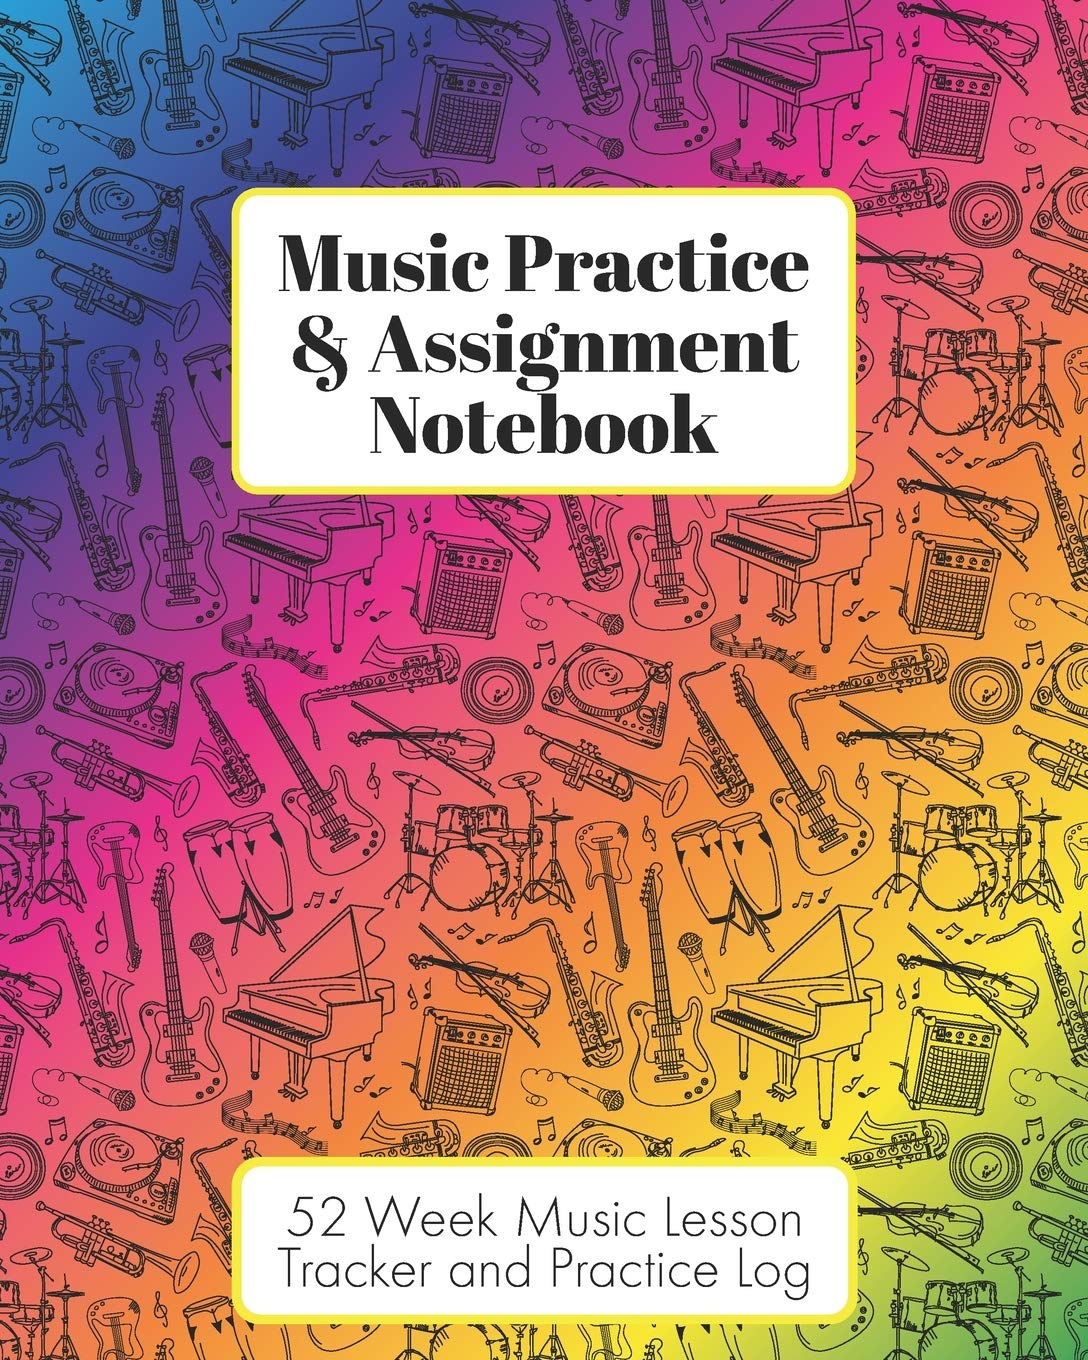 Blue MY MUSIC JOT-A-NOTE Practice Notebook